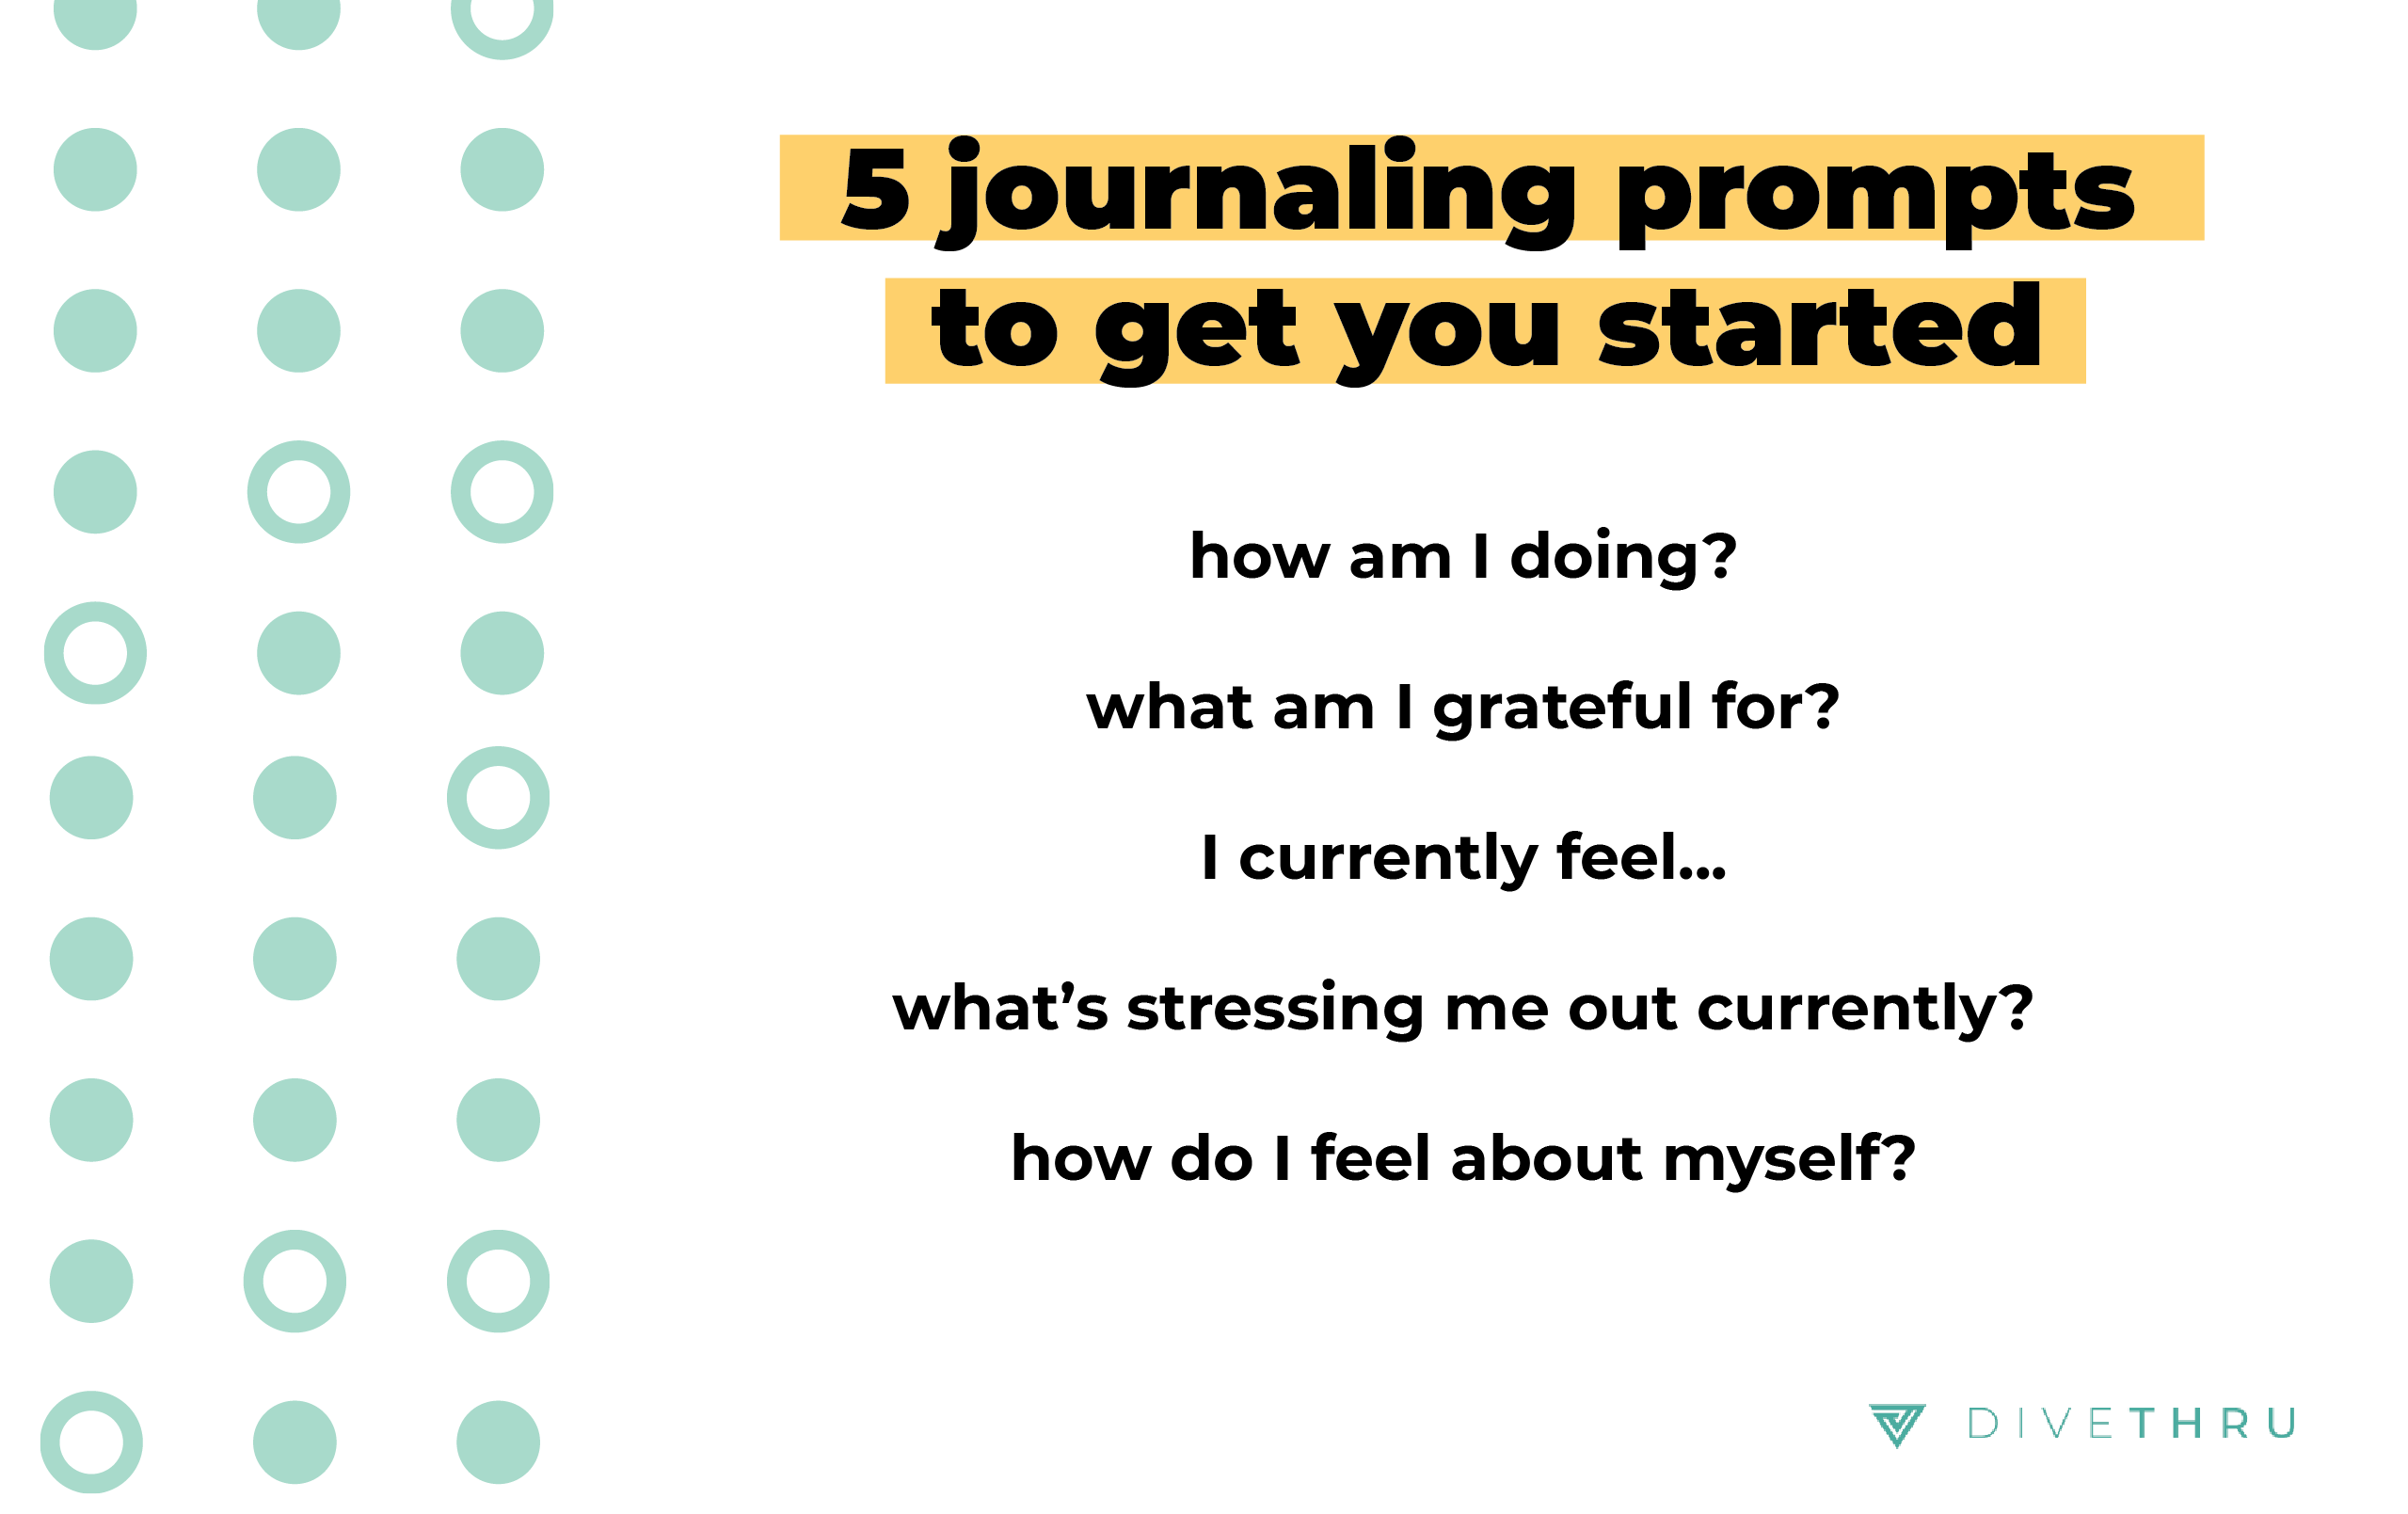 5 journaling prompts to get you started: how am I doing? what am I grateful for? I currently feel... what's stressing me out currently? how do I feel about myself?